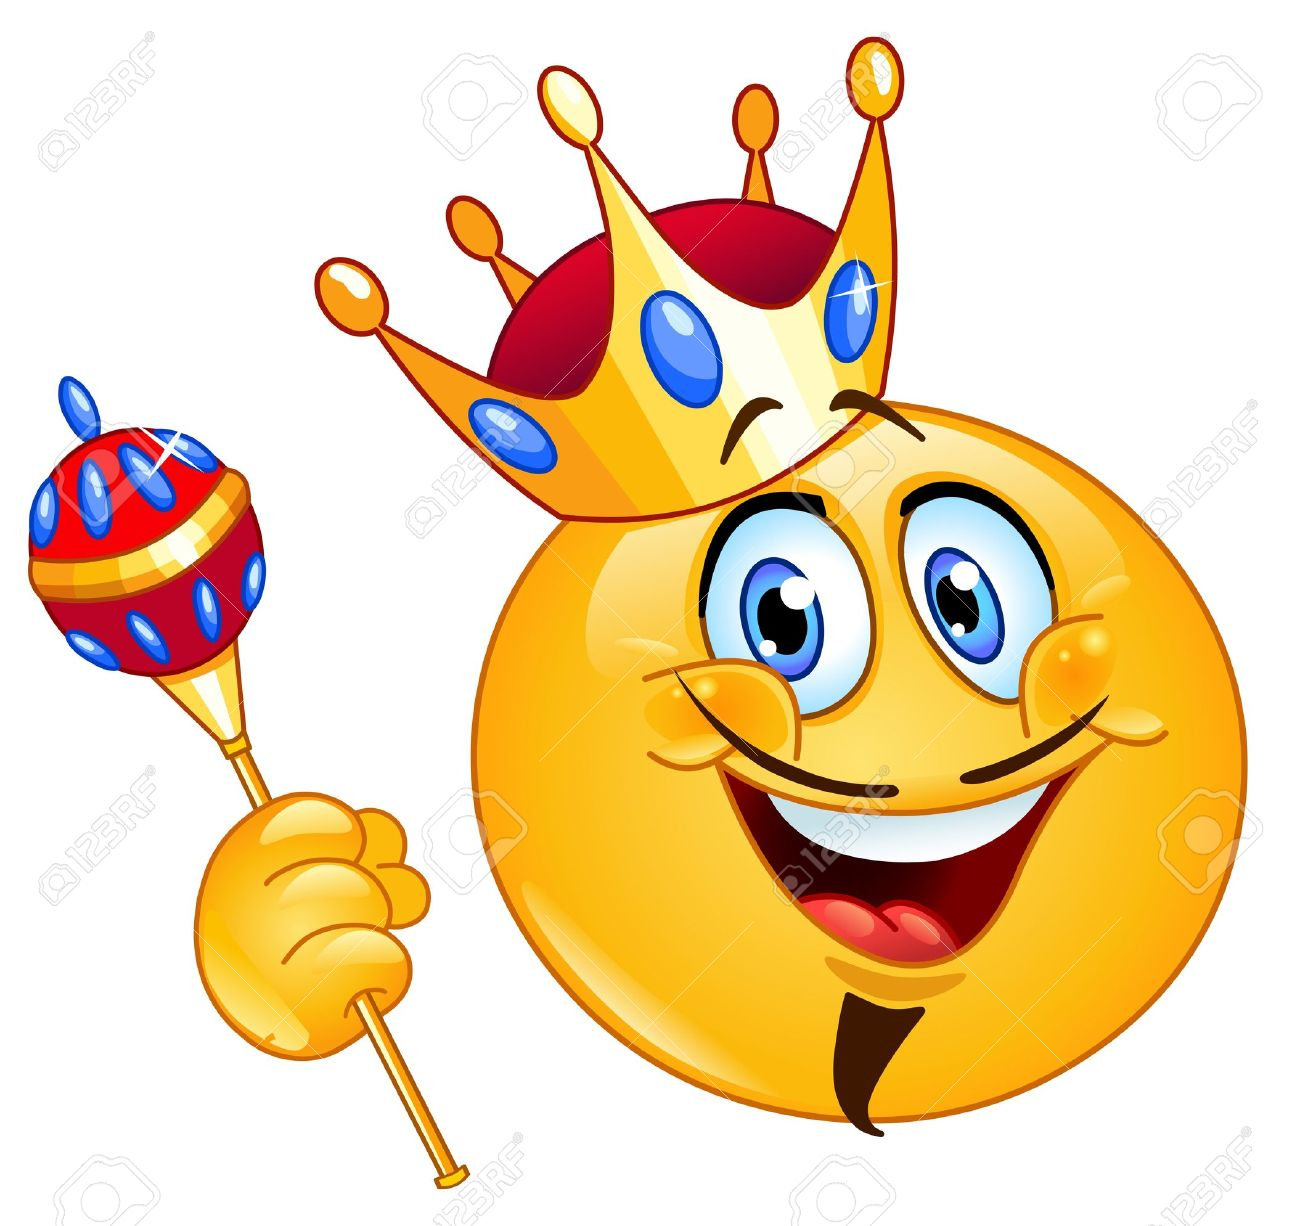 King emoticon holding a scepter Stock Vector - 16004962